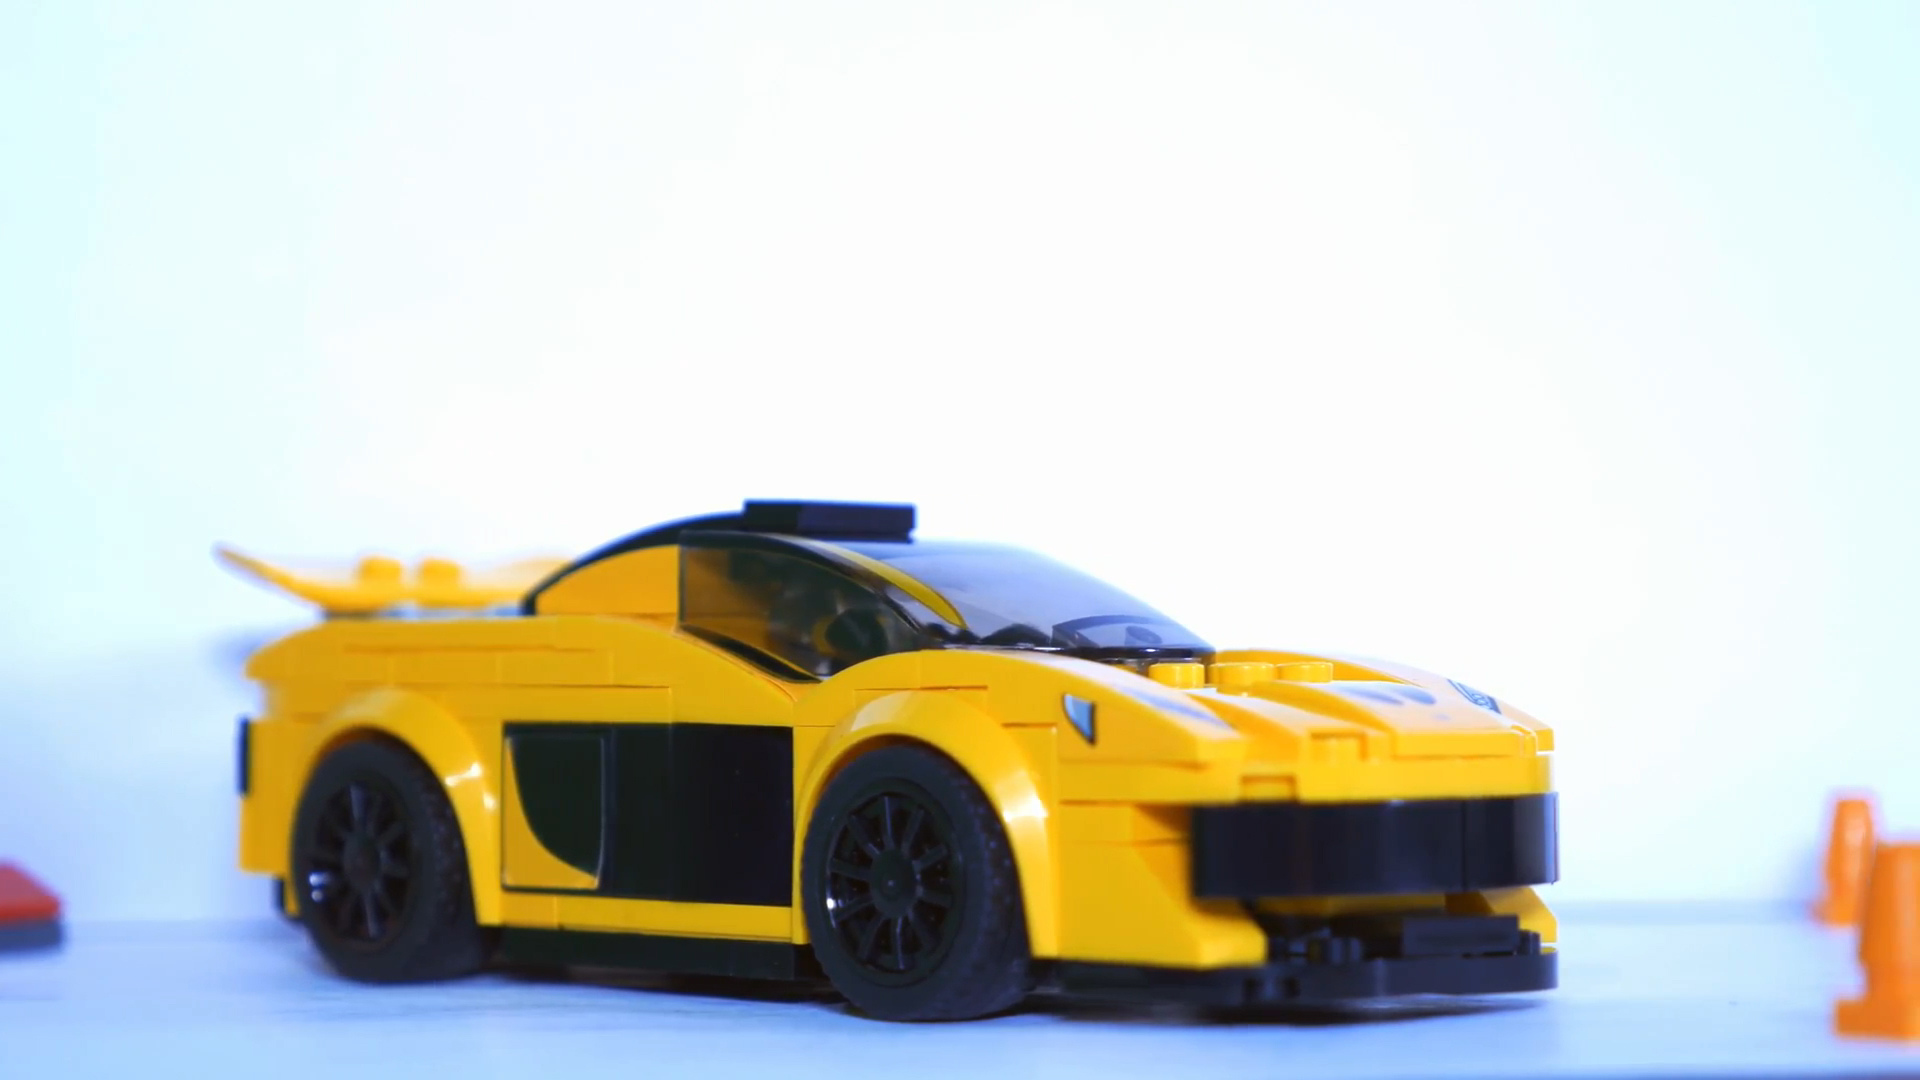 Mclaren P1 For Sale >> This LEGO VW Beetle is pretty darn neat - Autoblog